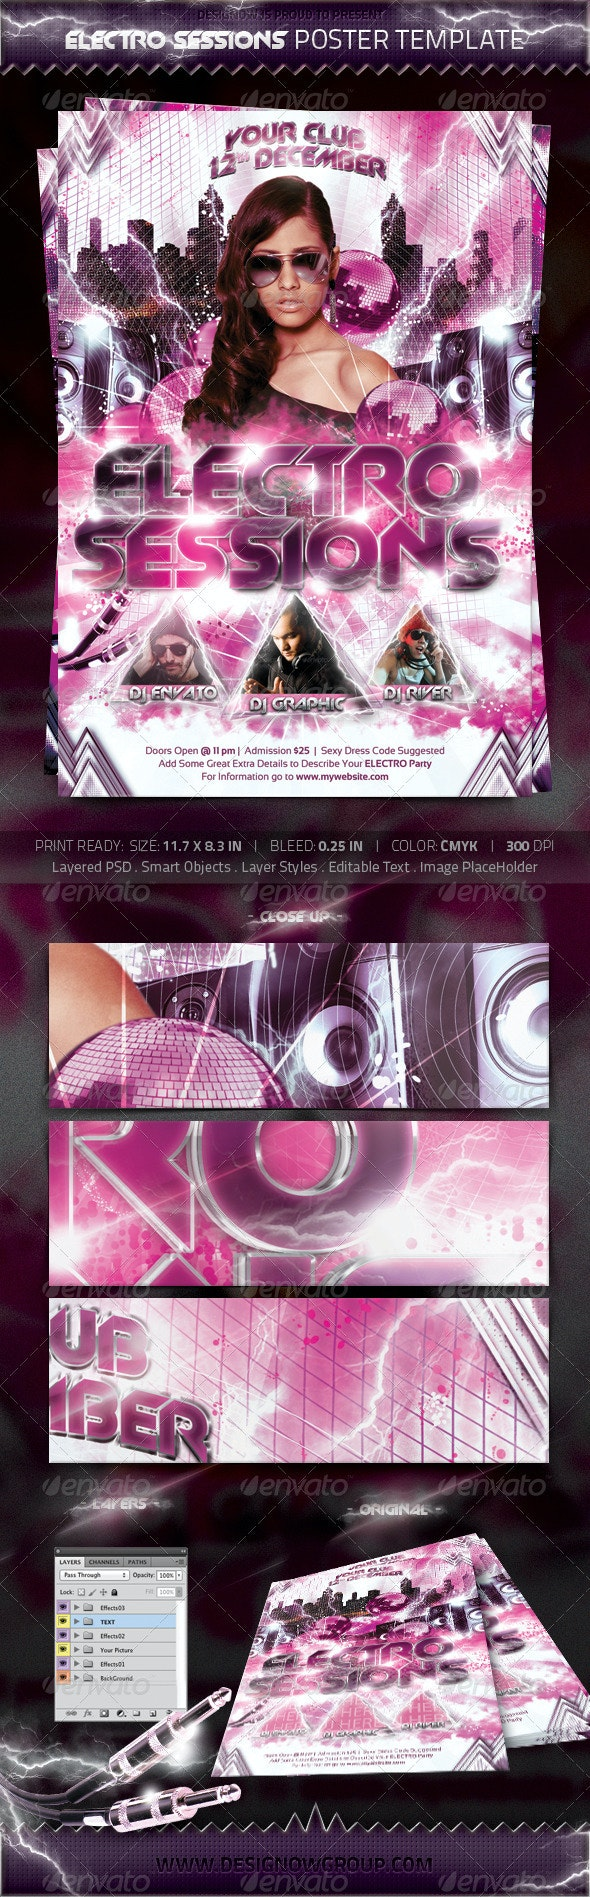 Electronic Sessions Poster Template - Clubs & Parties Events